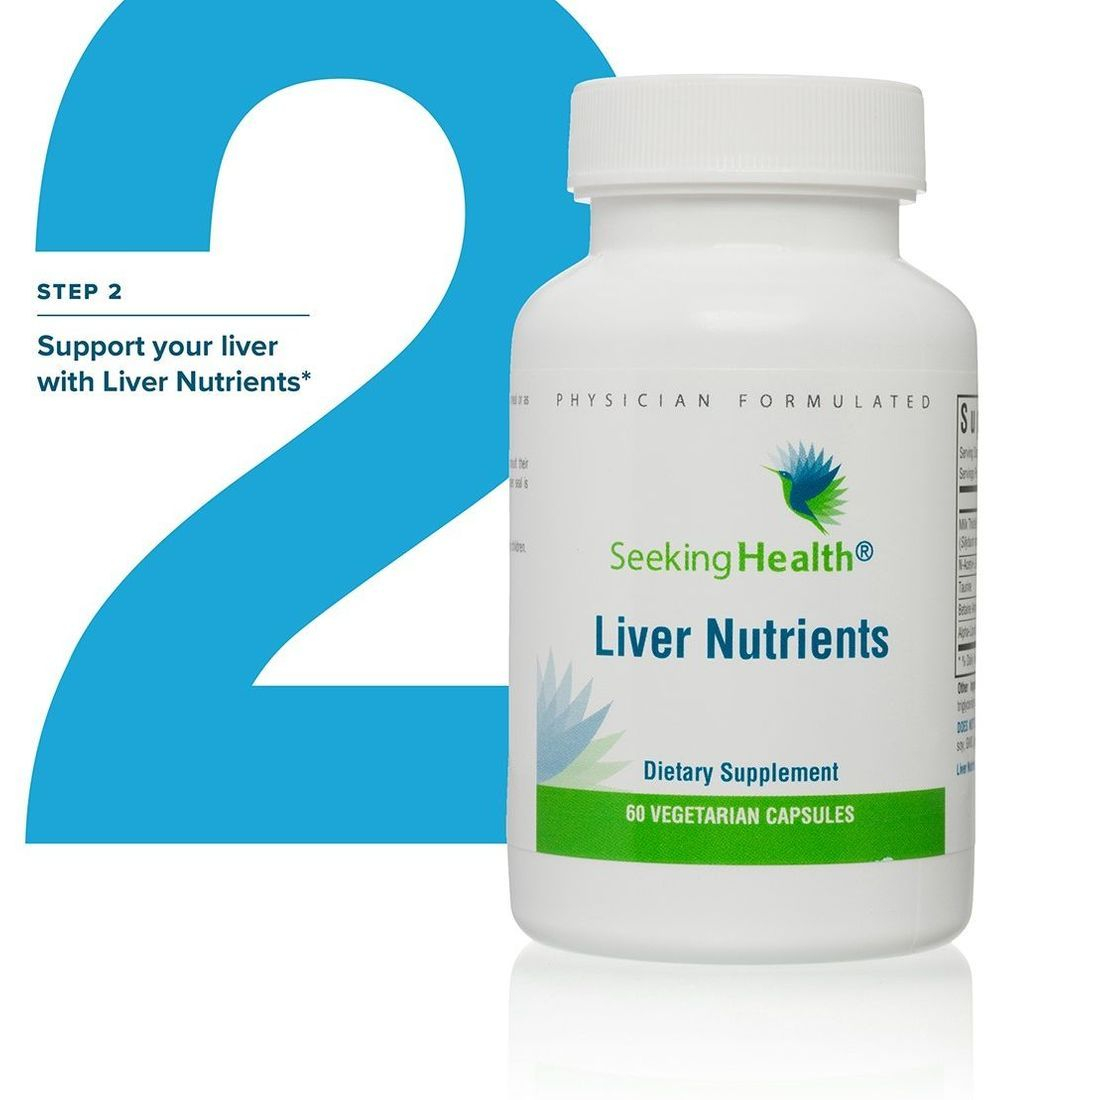 Liver Nutrients to help detox